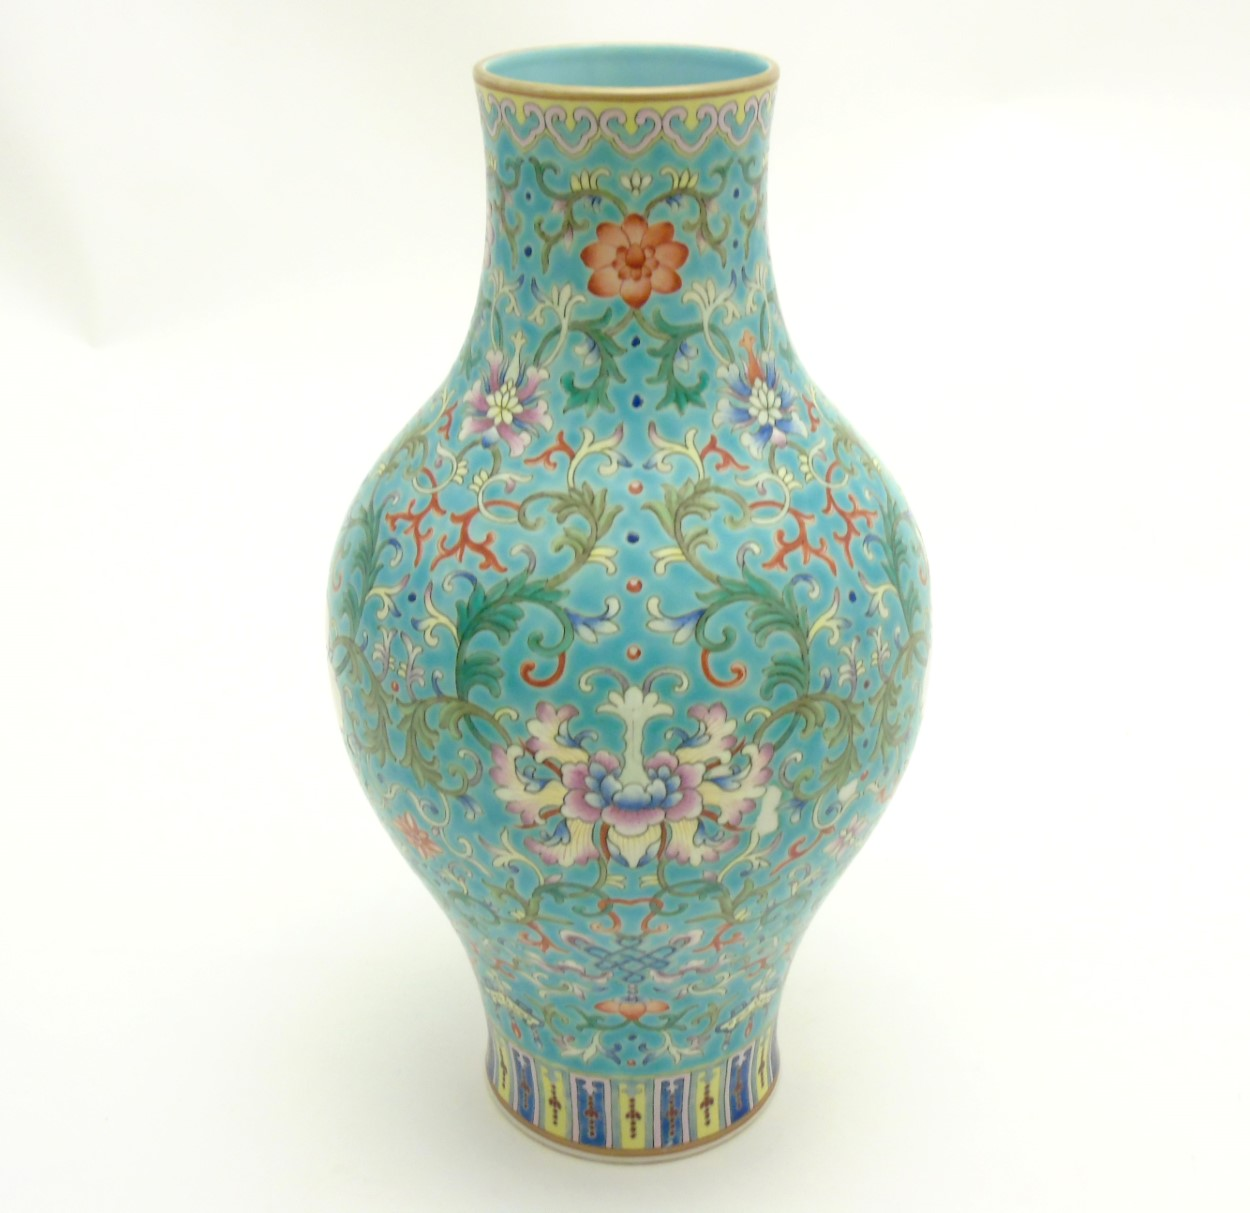 Lot 31 - A Chinese Famille Rose turquoise-ground cloisonné-imitation vase, with round bulbous body to centre,